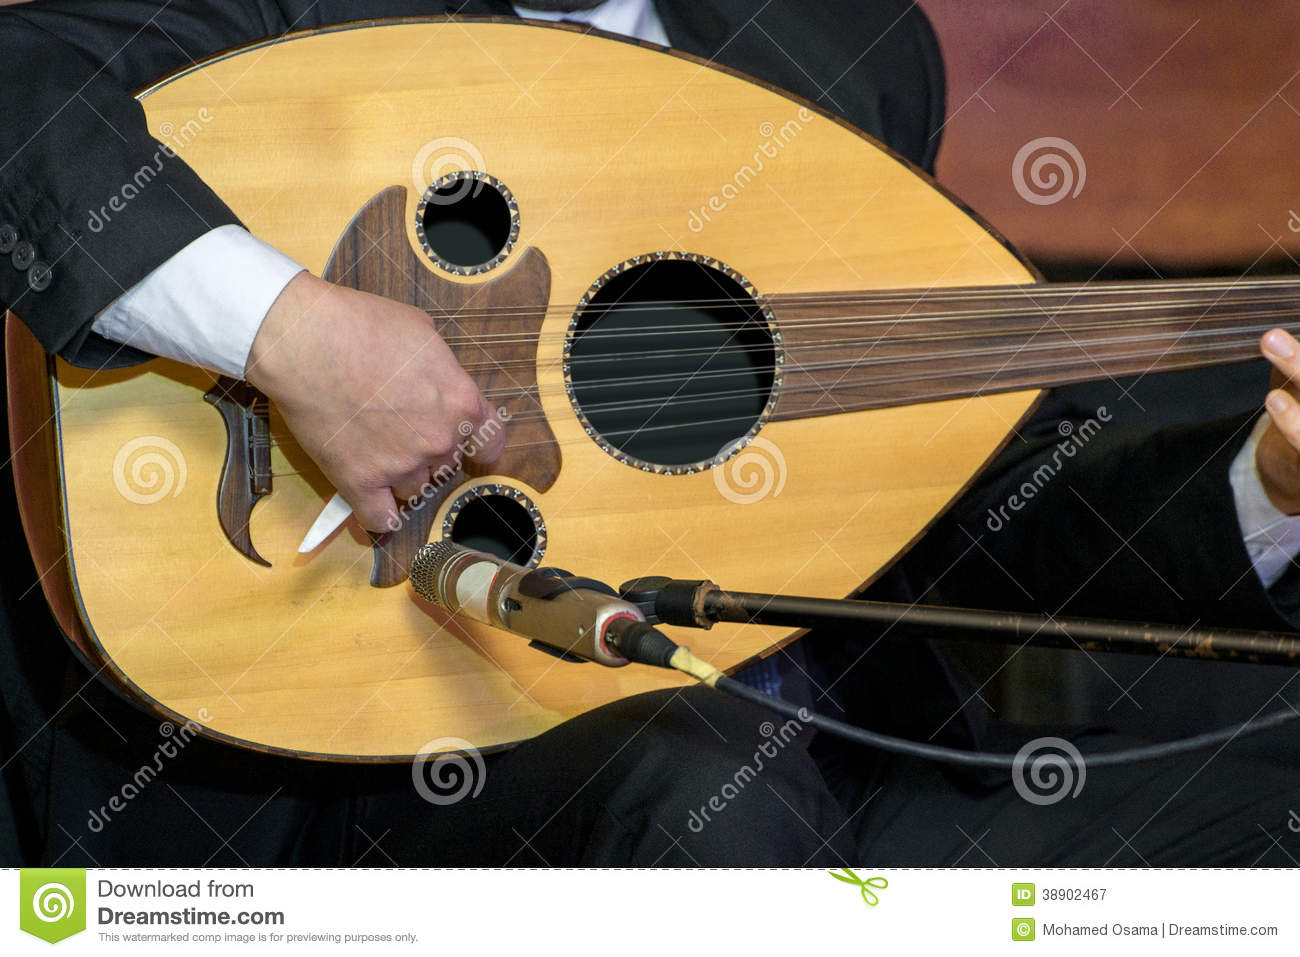 Playing Lute stock image  Image of detail, closeup, fingers - 38902467